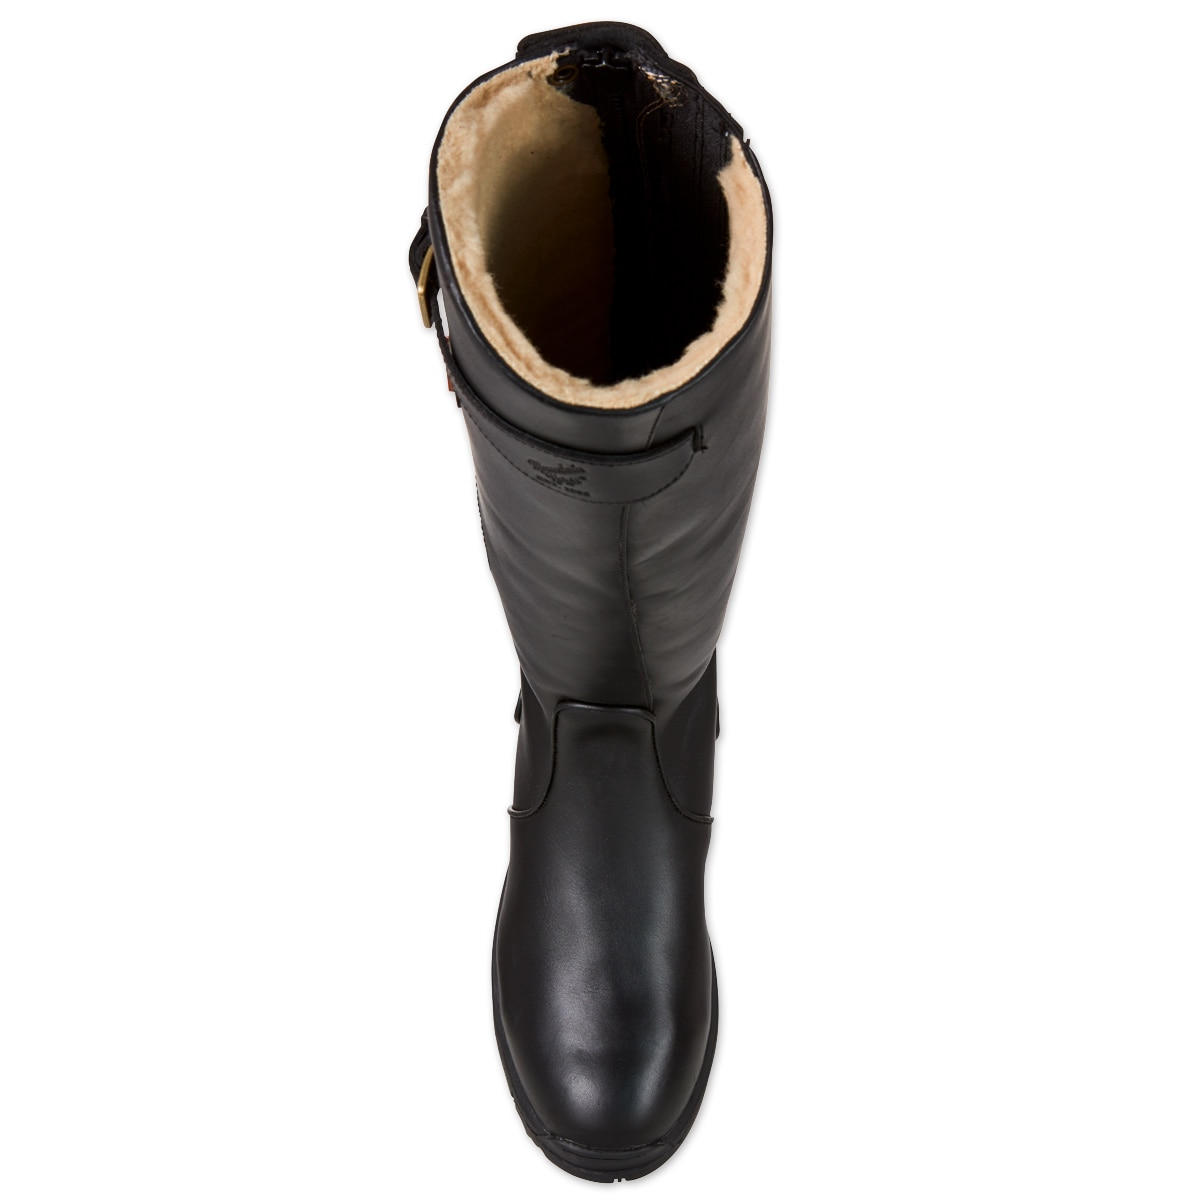 new style of 2019 convenience goods enjoy lowest price Mountain Horse Snowy River Tall Winter Boot